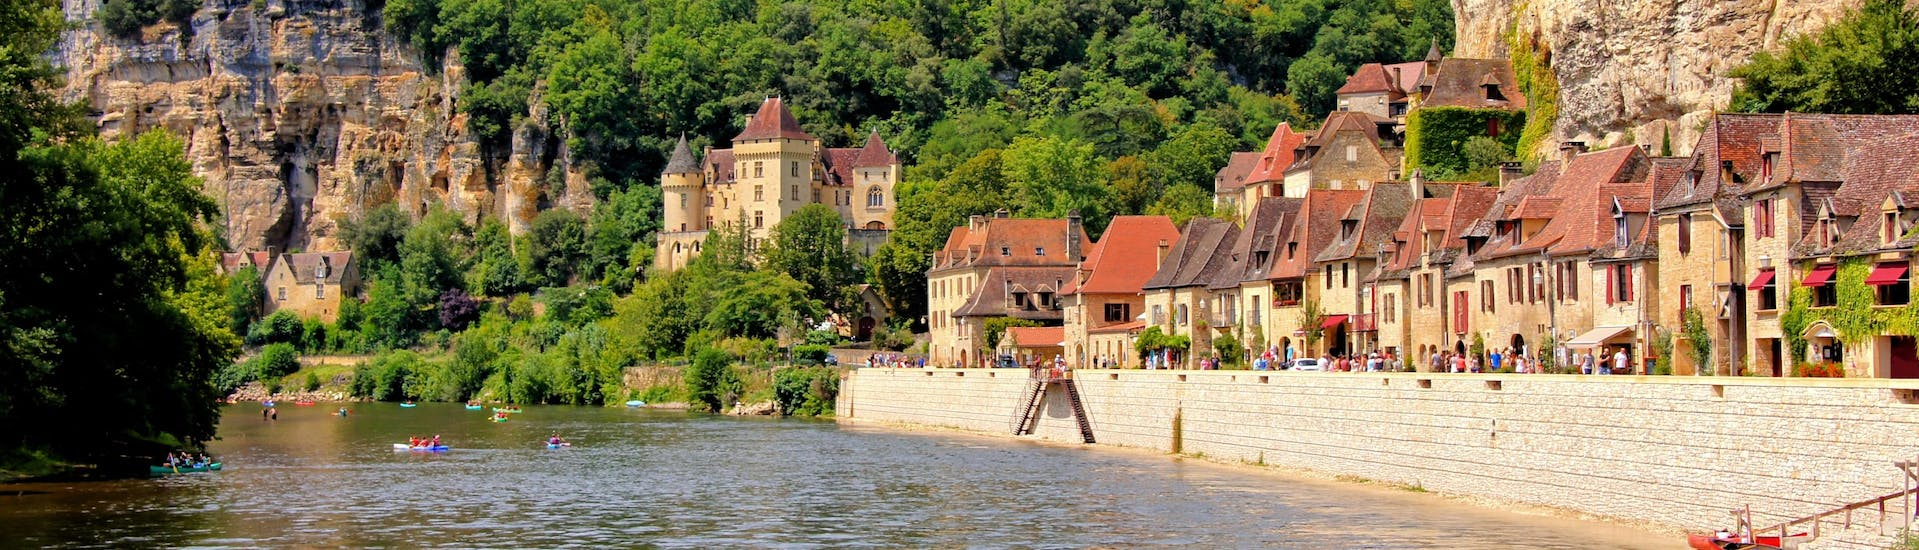 Beautiful view of the village of La Roque-Gageac on the Dordogne River on which tourists tourists do canoeing during summer.